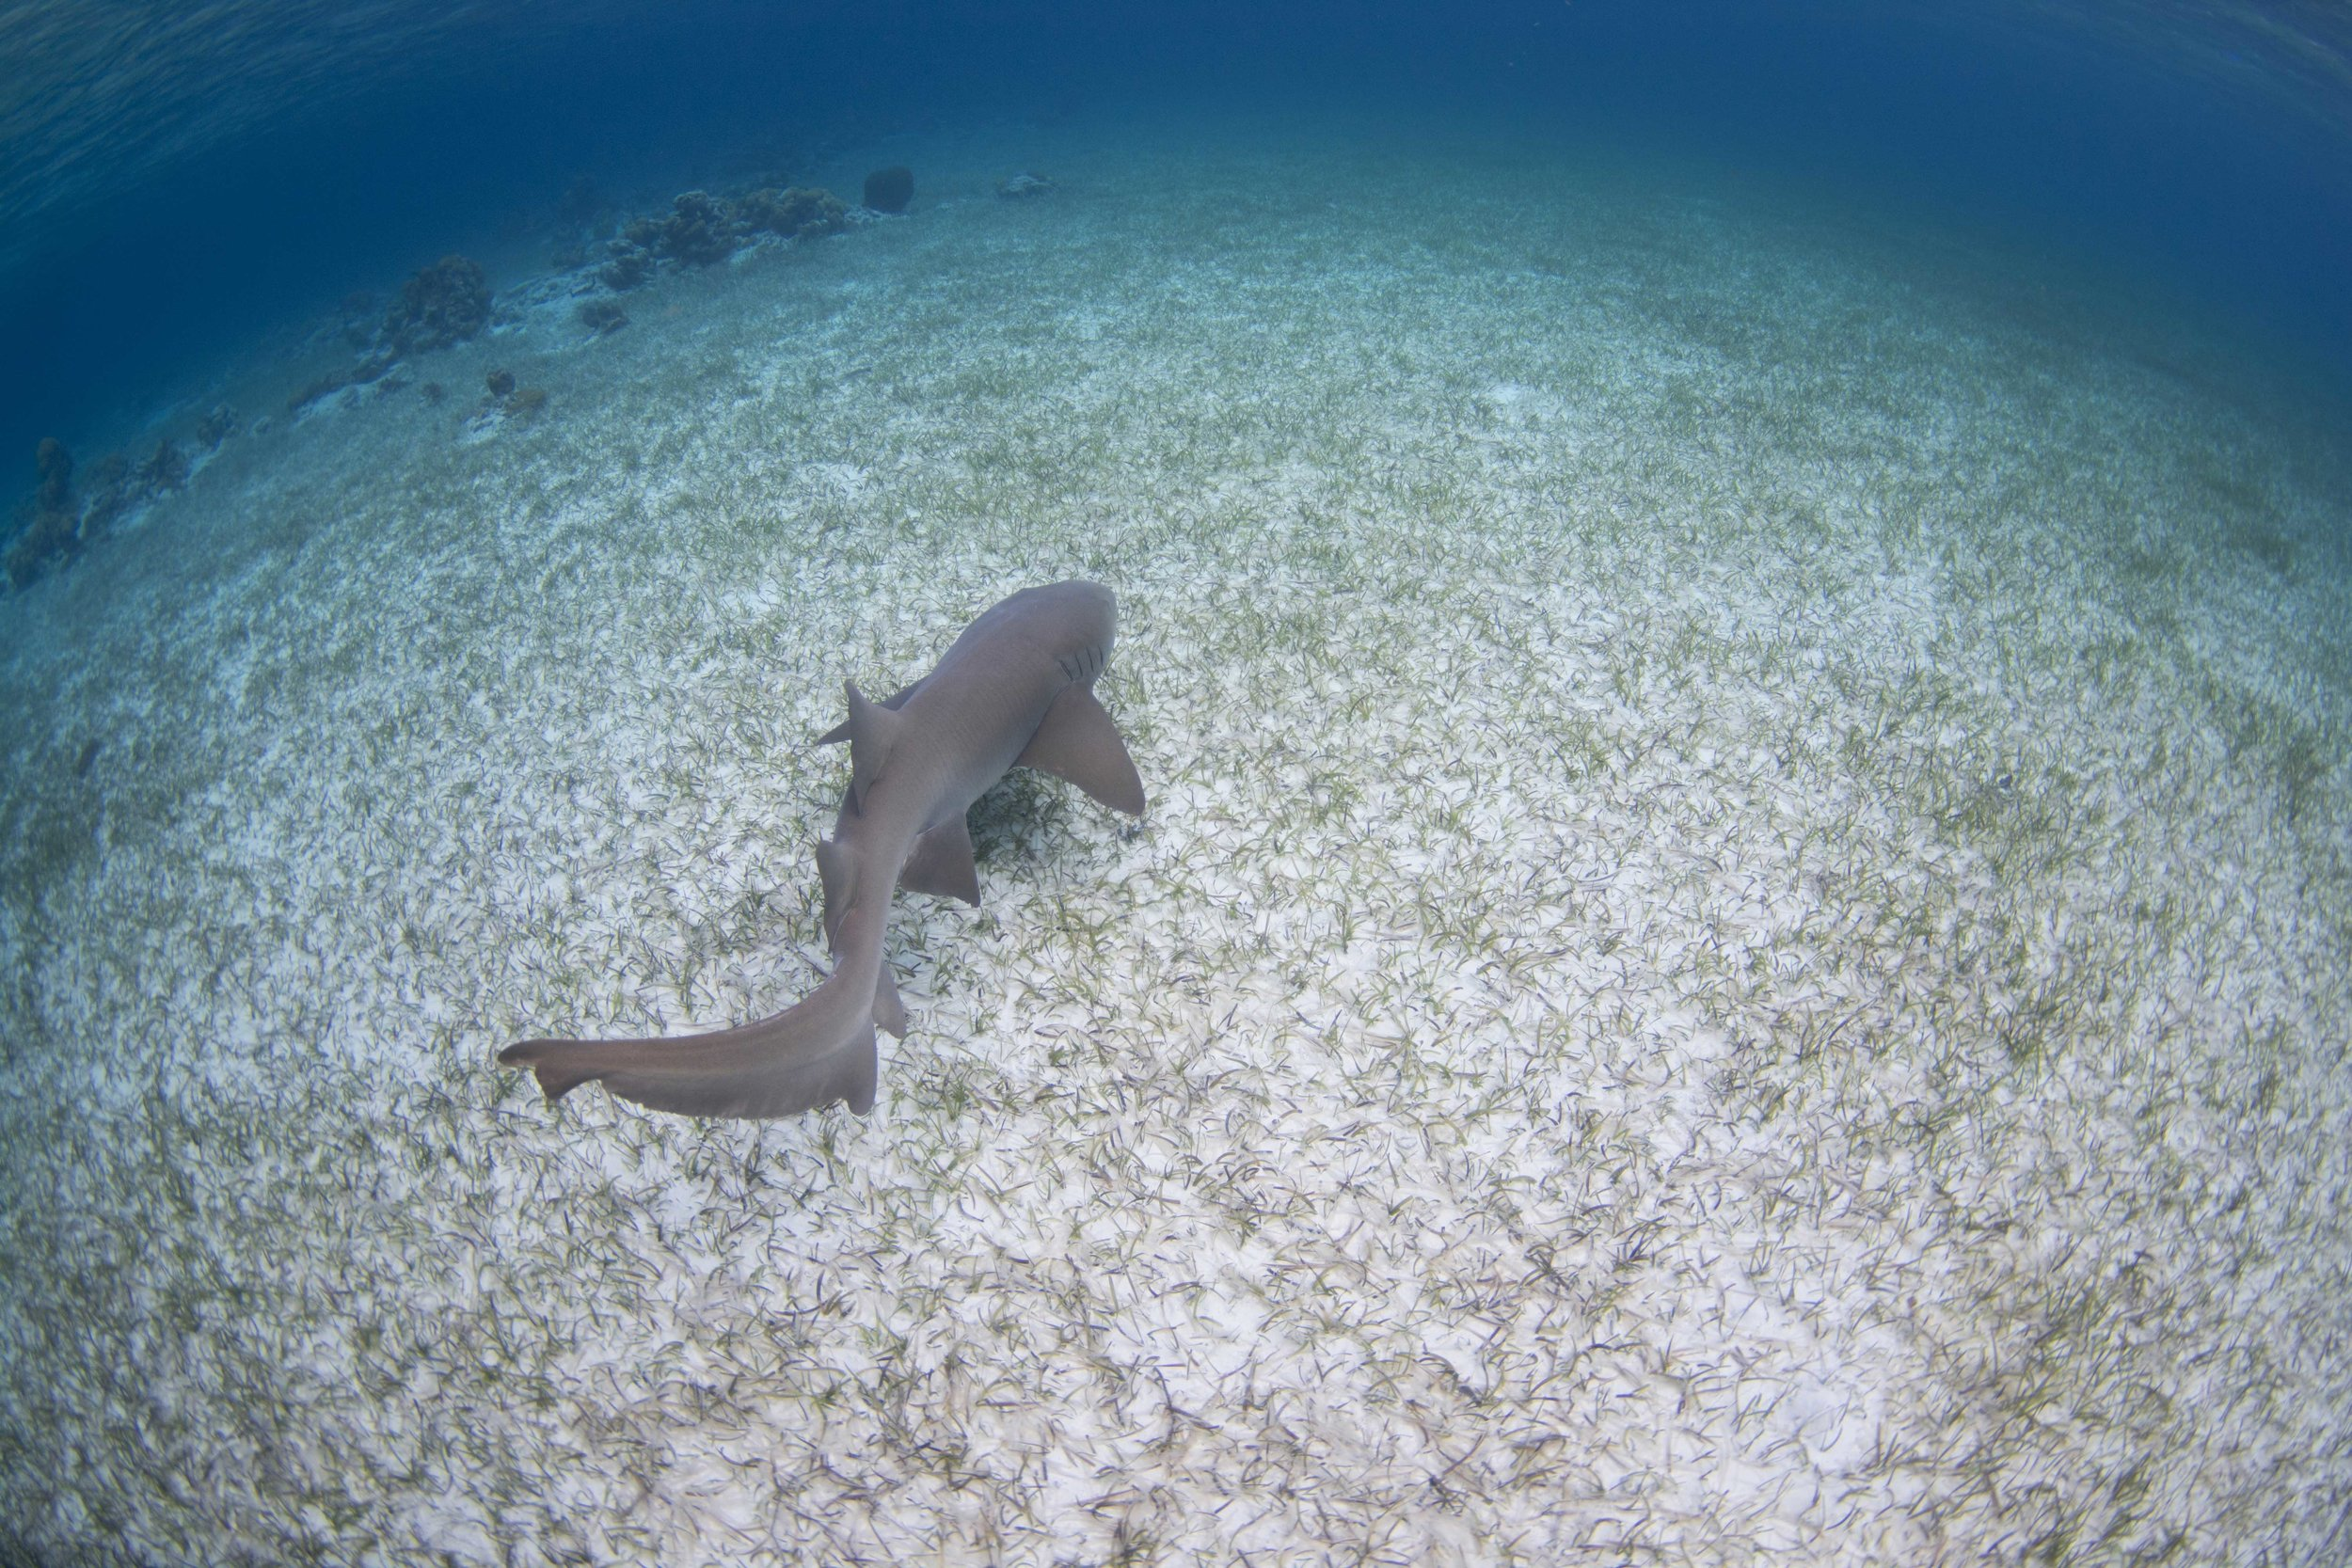 Guest Drew and trip leader Annie saw the nurse shark swim away strong on release